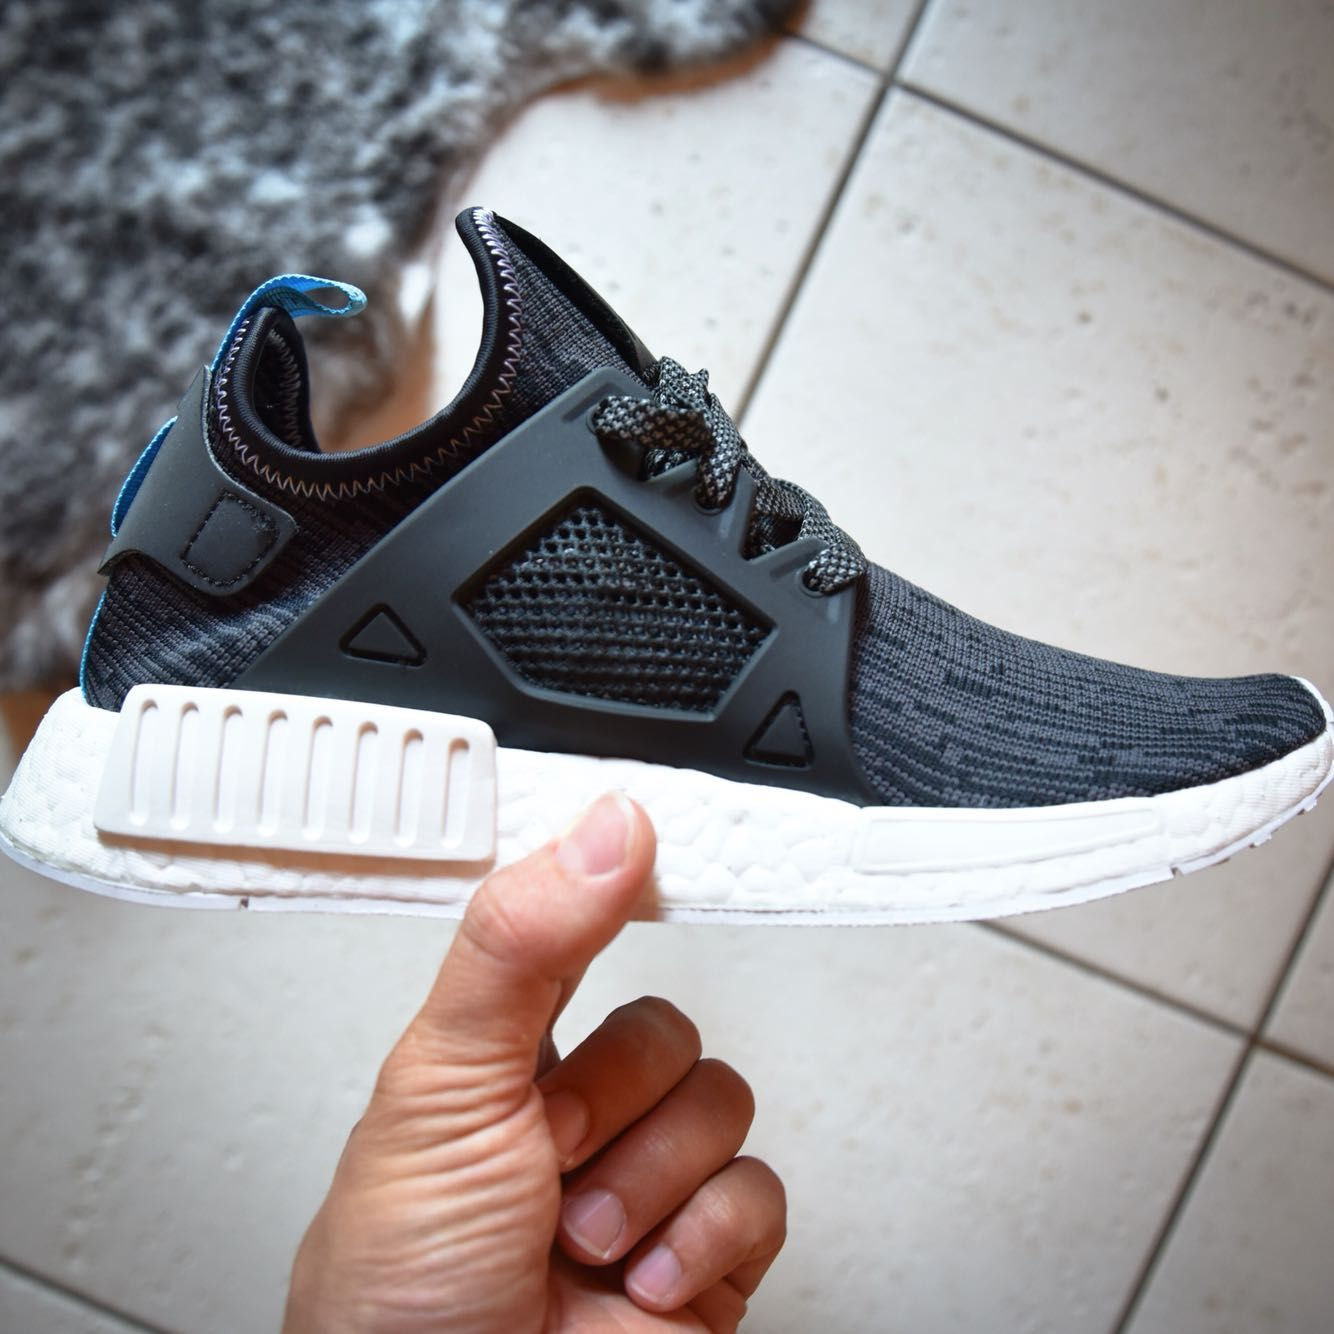 adidas kanye west boost mens adidas nmd runner xr1 casual shoes